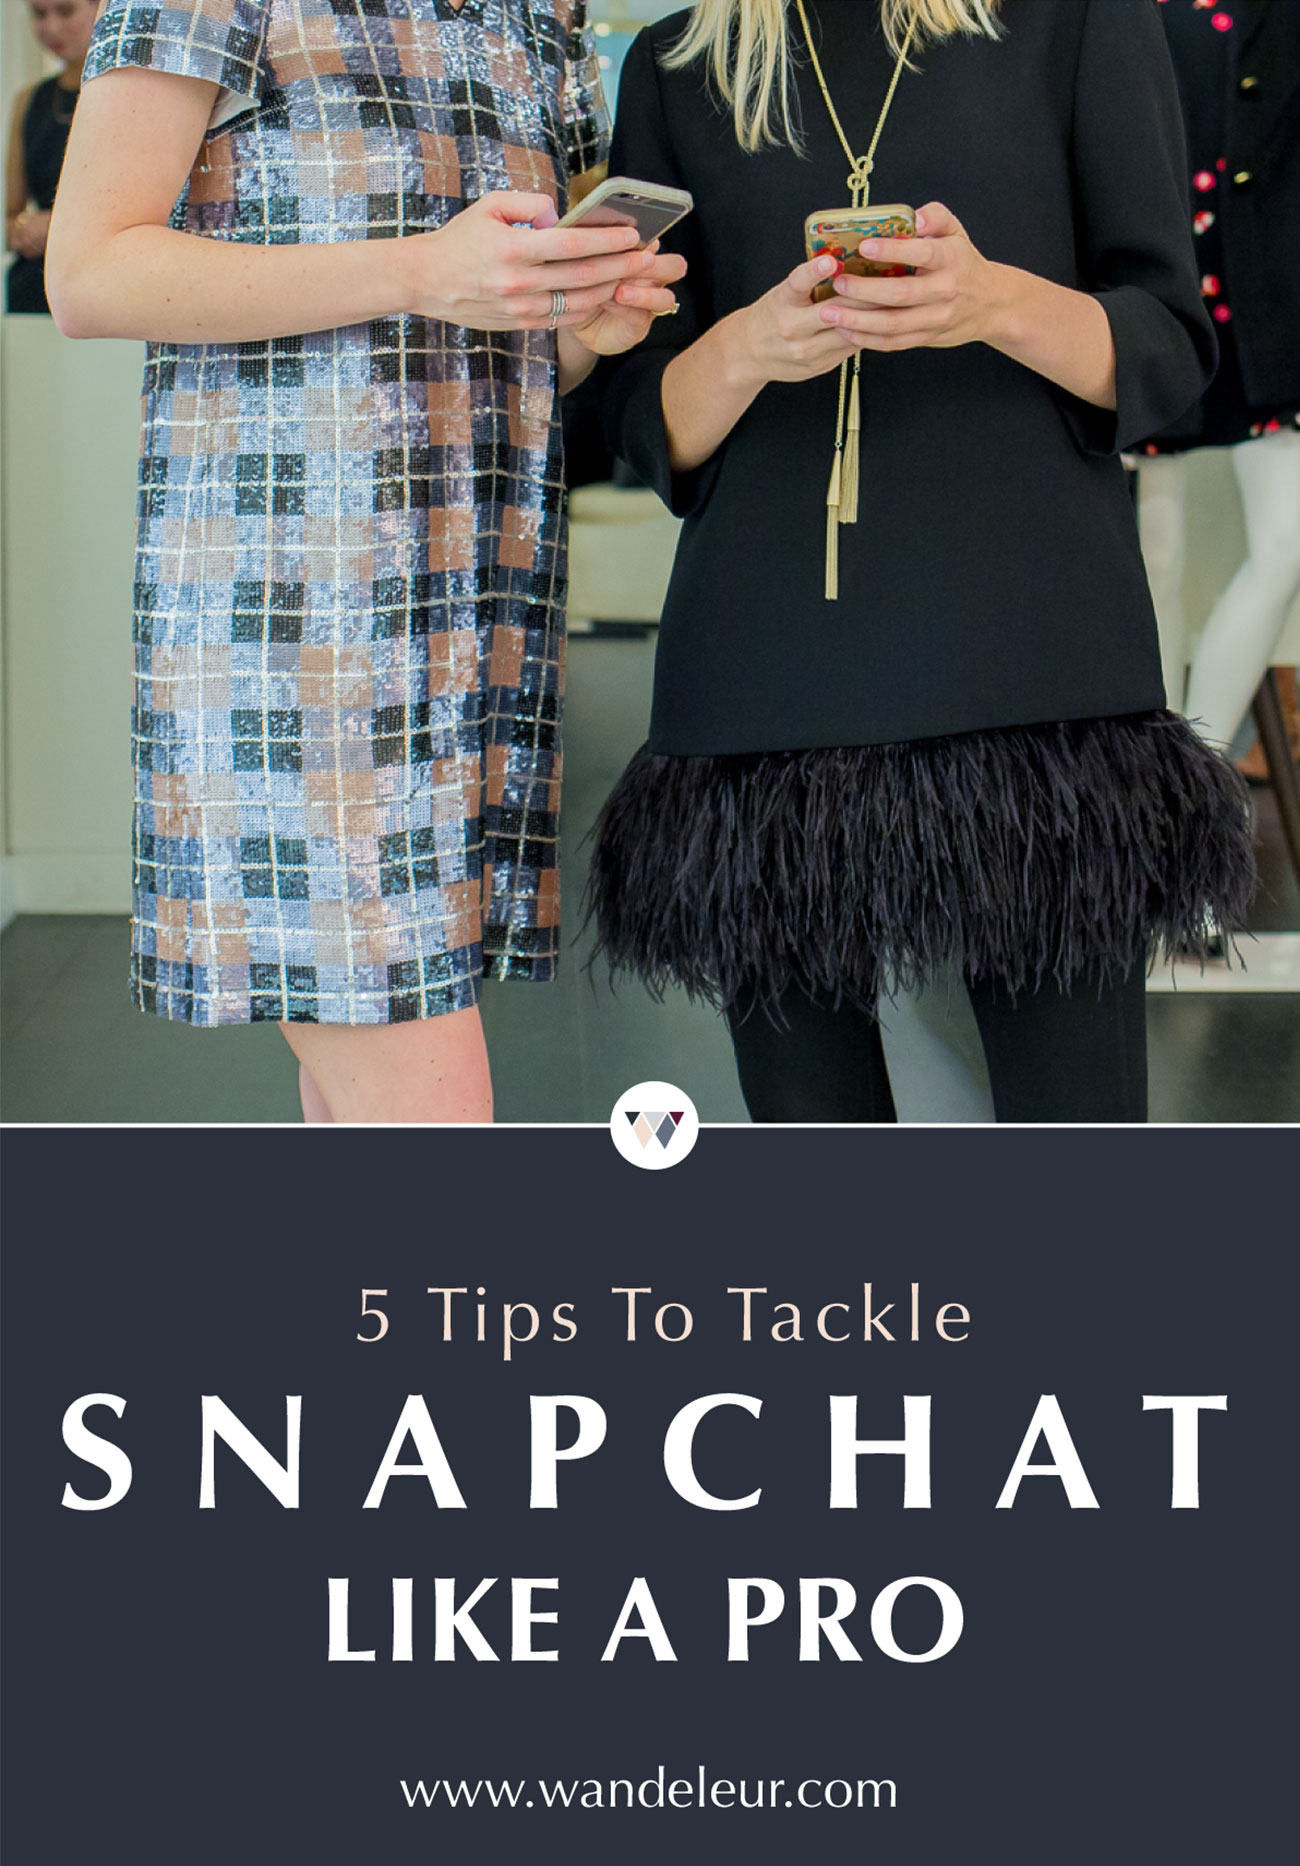 Tips to Tackle Snapchat Like a Pro - @Wandeleur